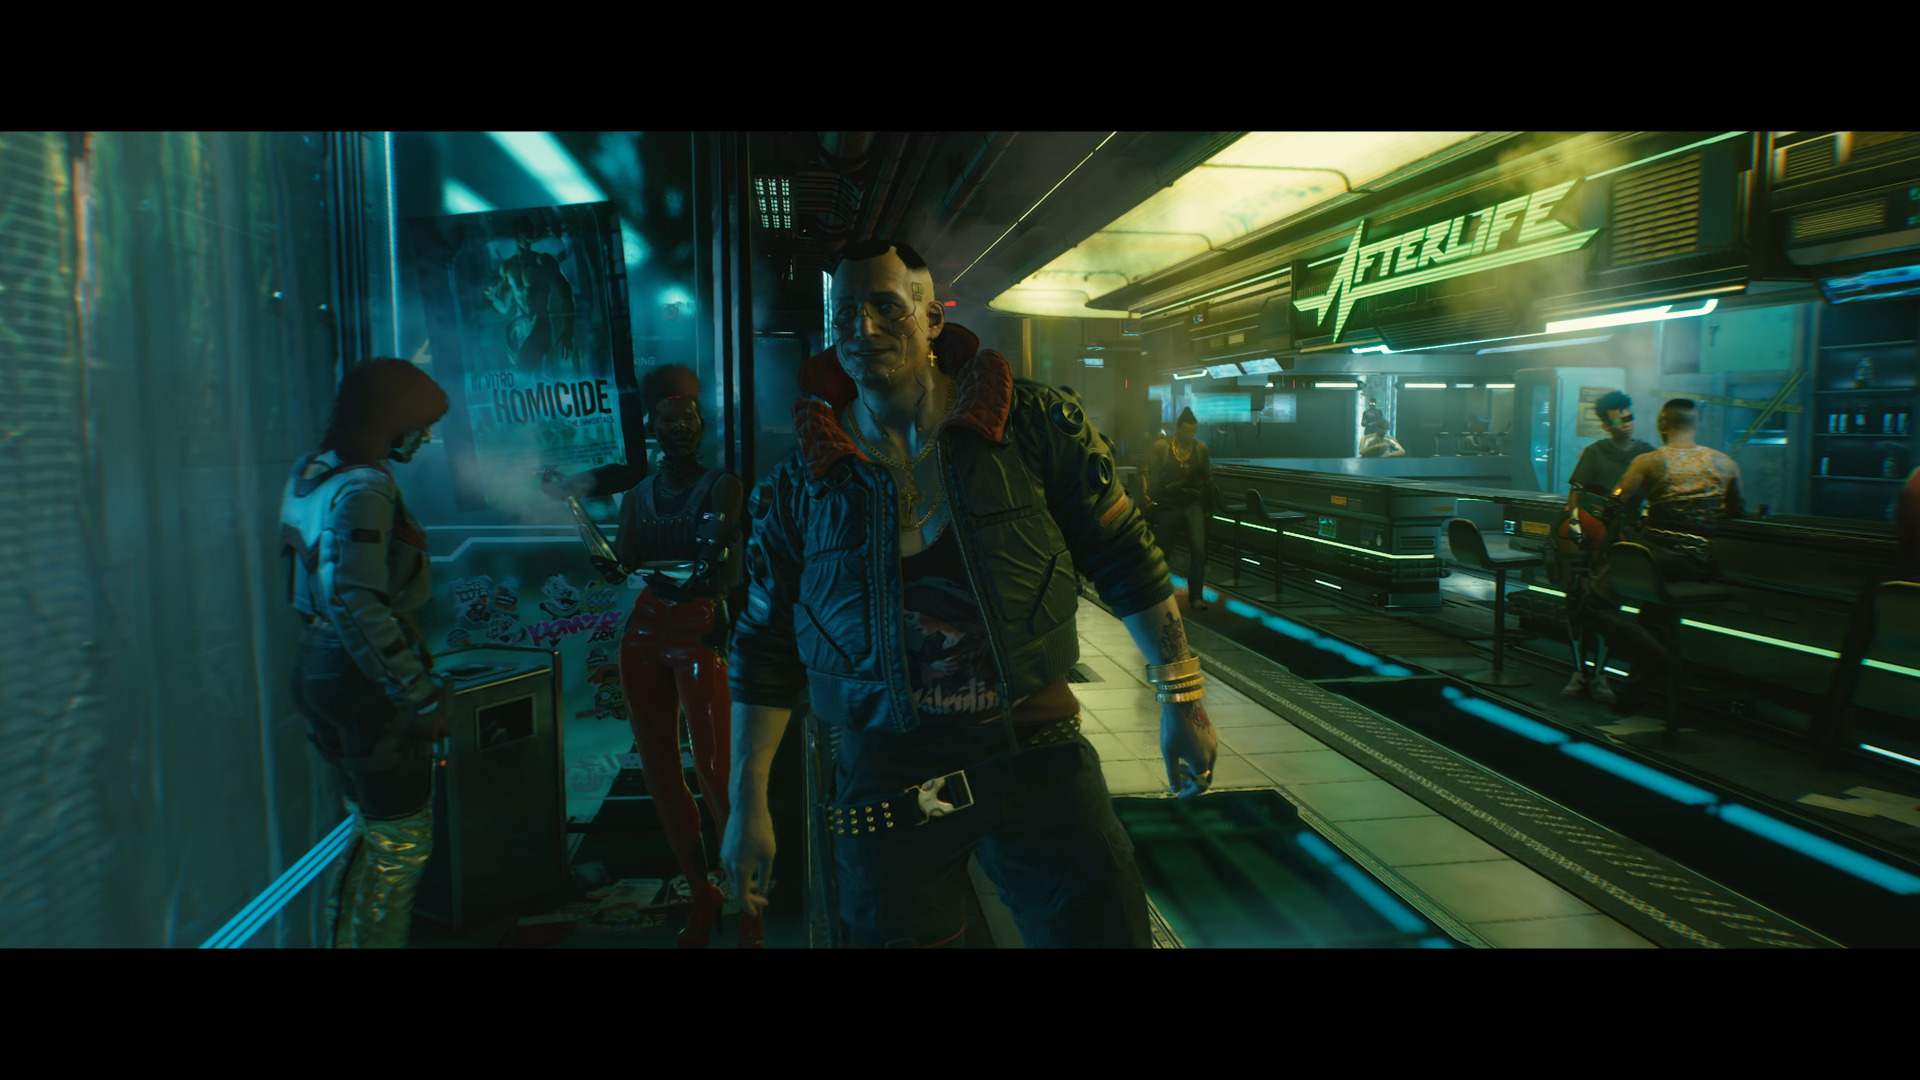 Discover 6 Cool Places to Visit in the Night City of Cyberpunk 2077